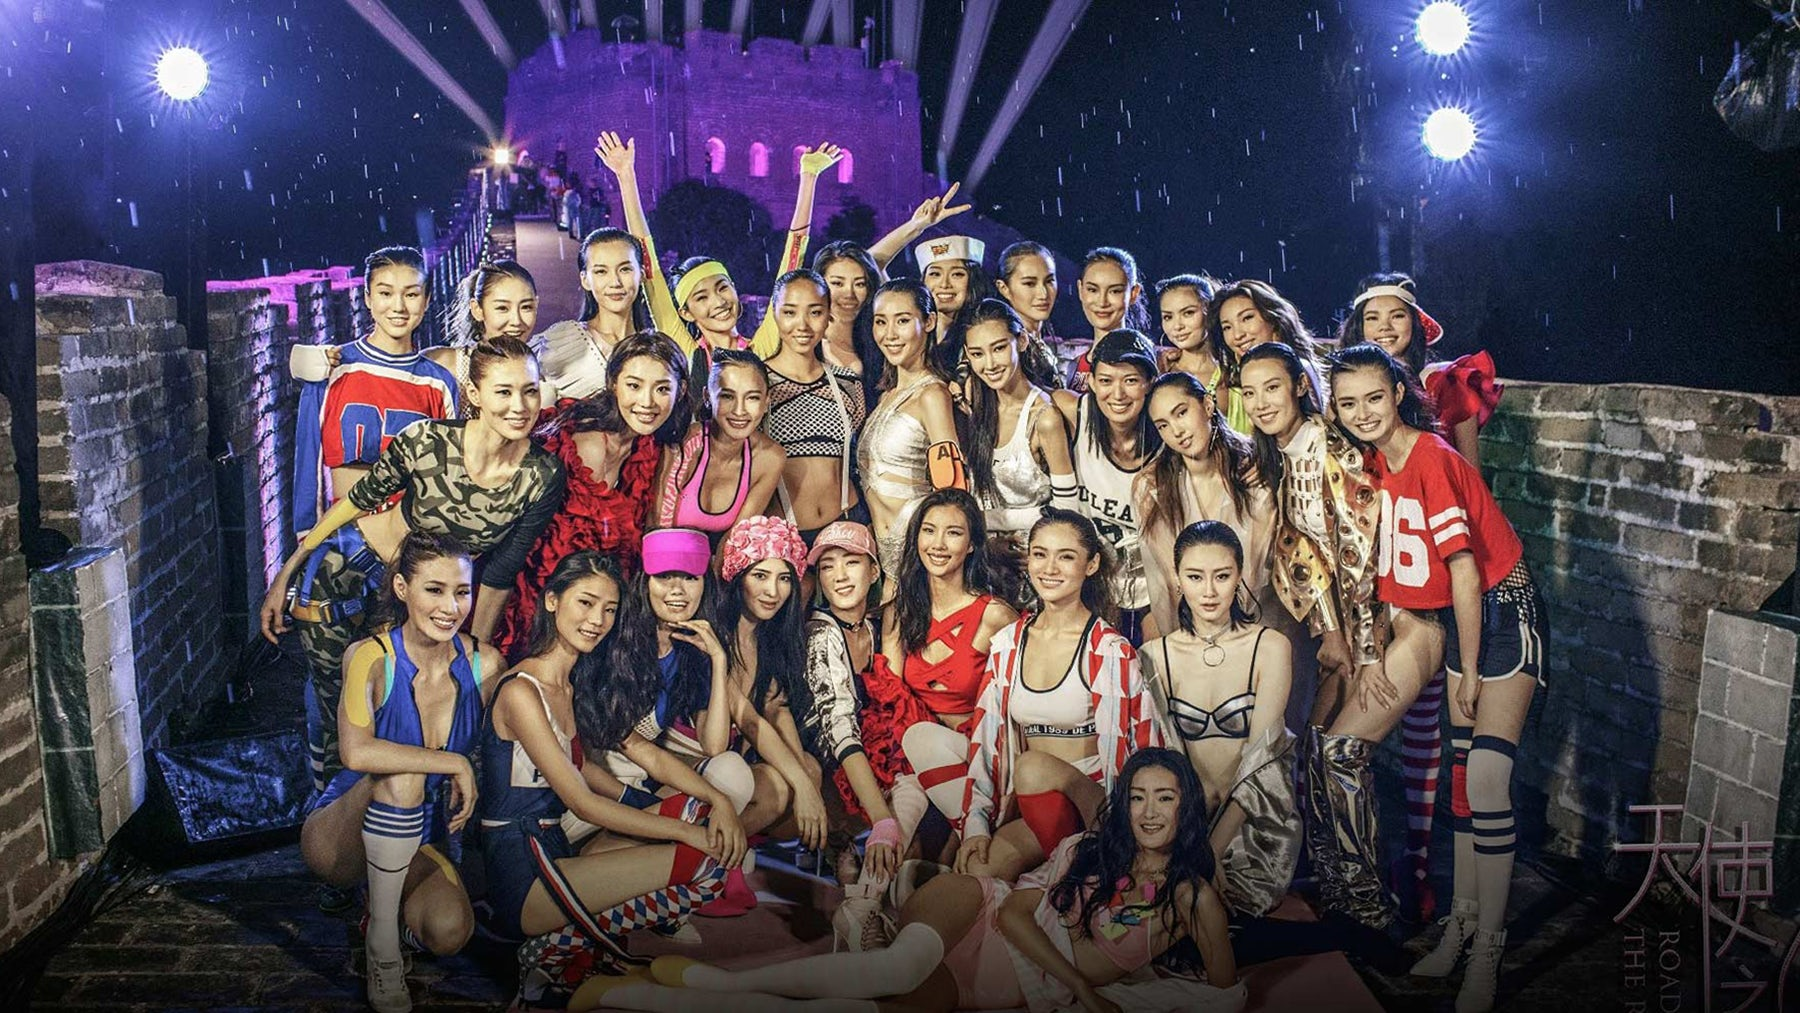 """A promotional image for Victoria's Secret reality show """"Road to the Runway""""  